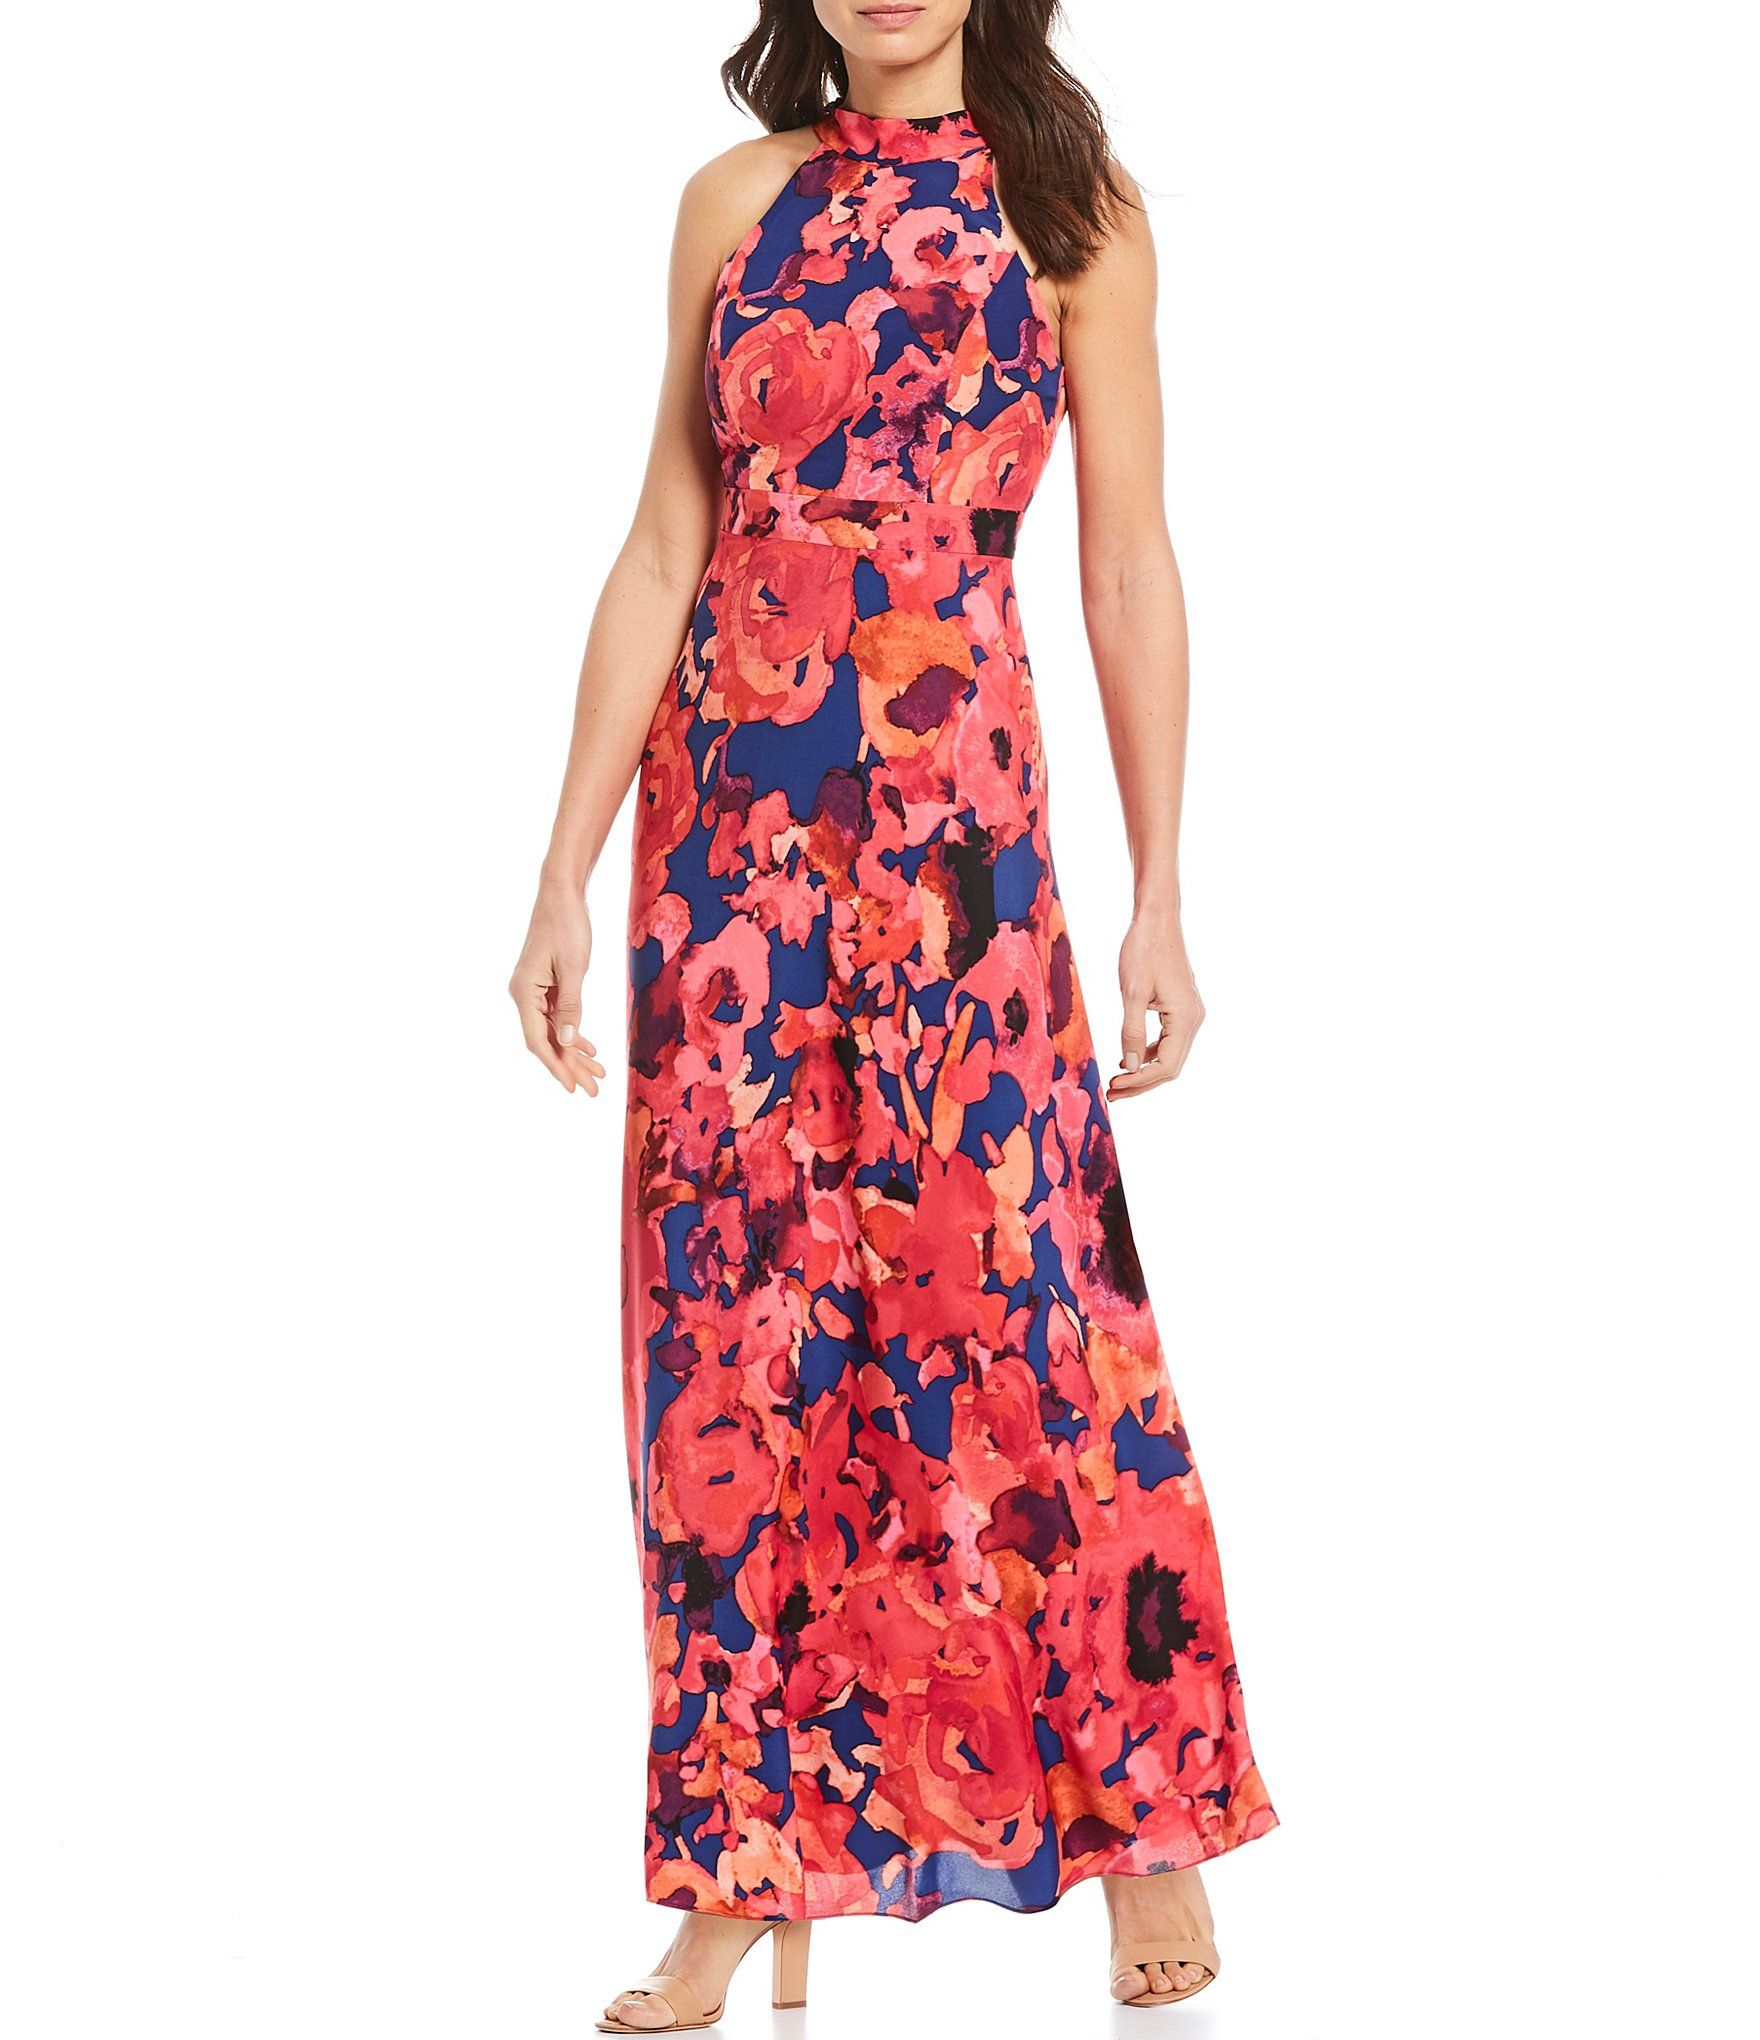 Pin By Mary Shook On Mother Of The Bride Floral Print Chiffon Maxi Dress Print Chiffon Petite Dresses [ 2040 x 1760 Pixel ]